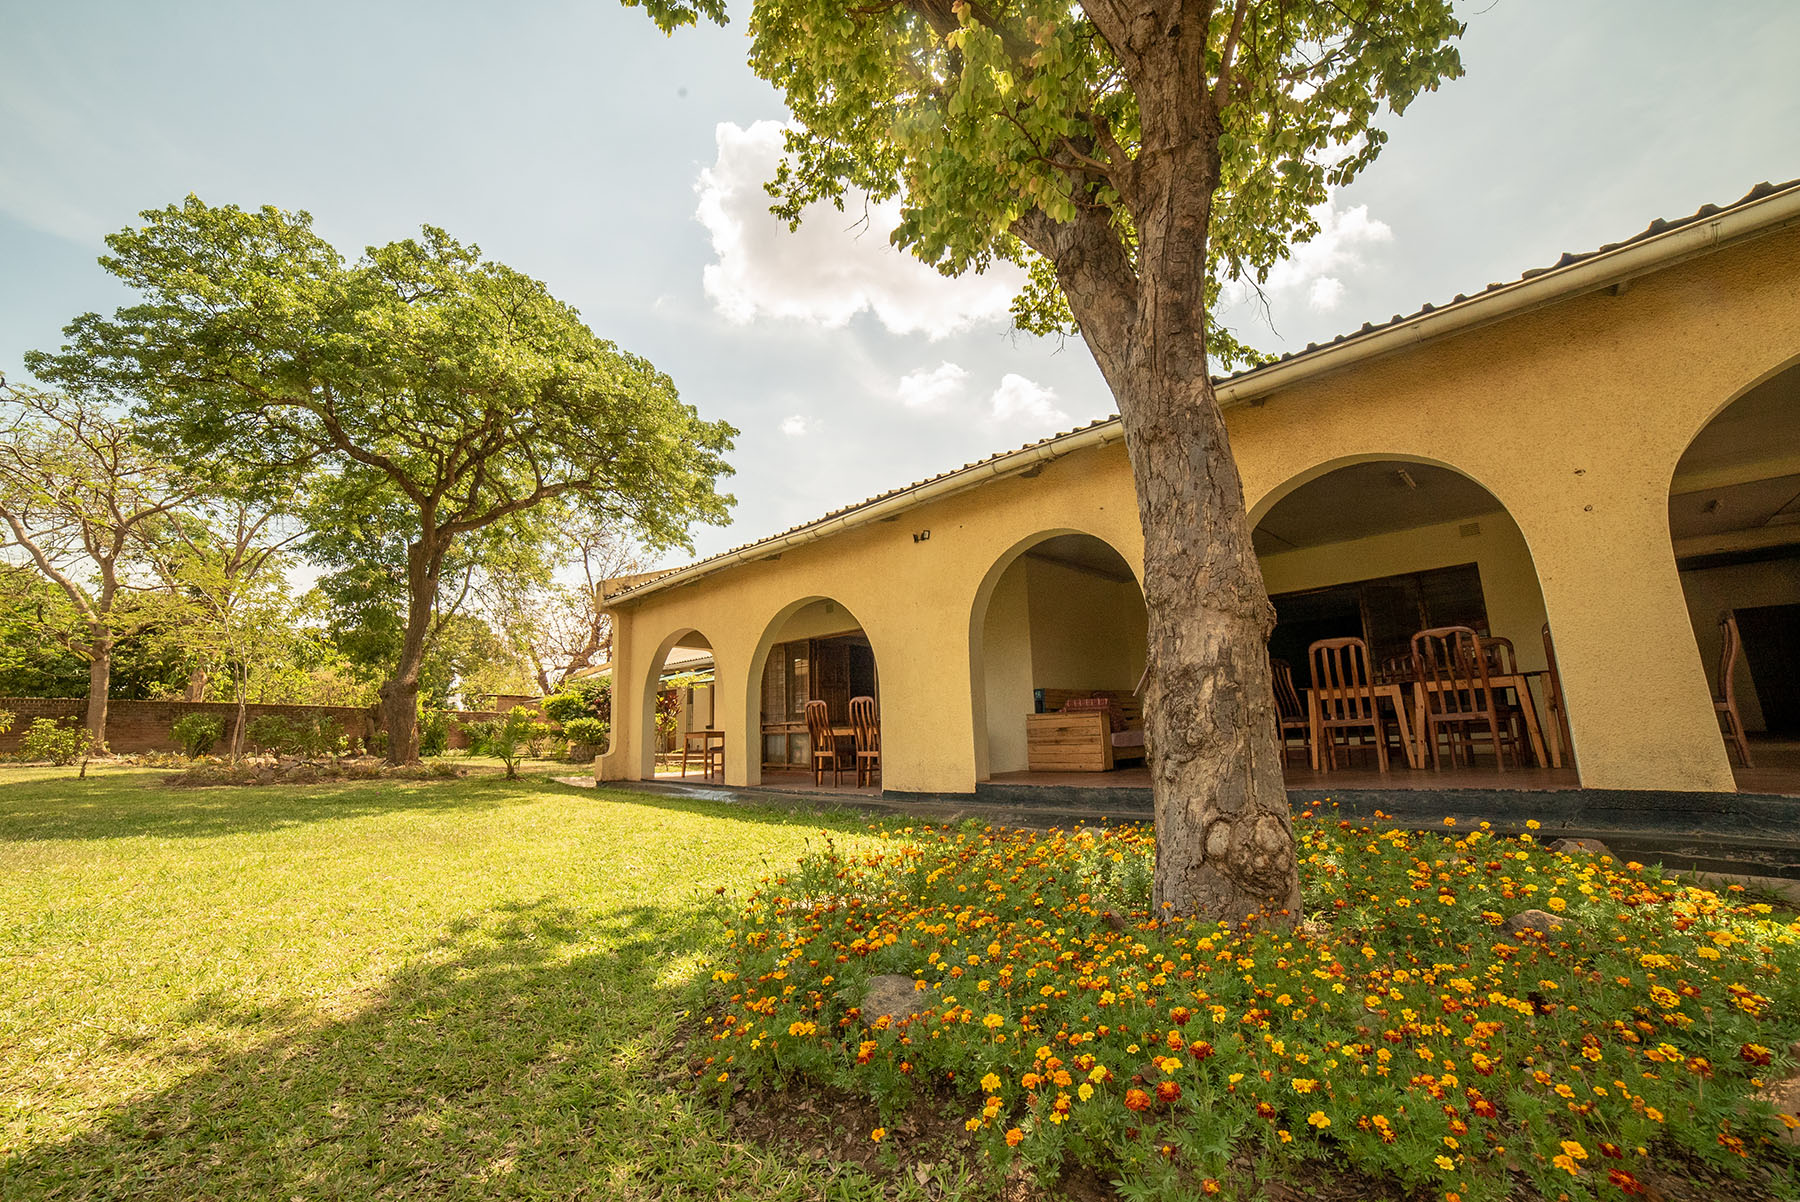 Thumbi View Lodge and Backpackers in Lilongwe Featured Image